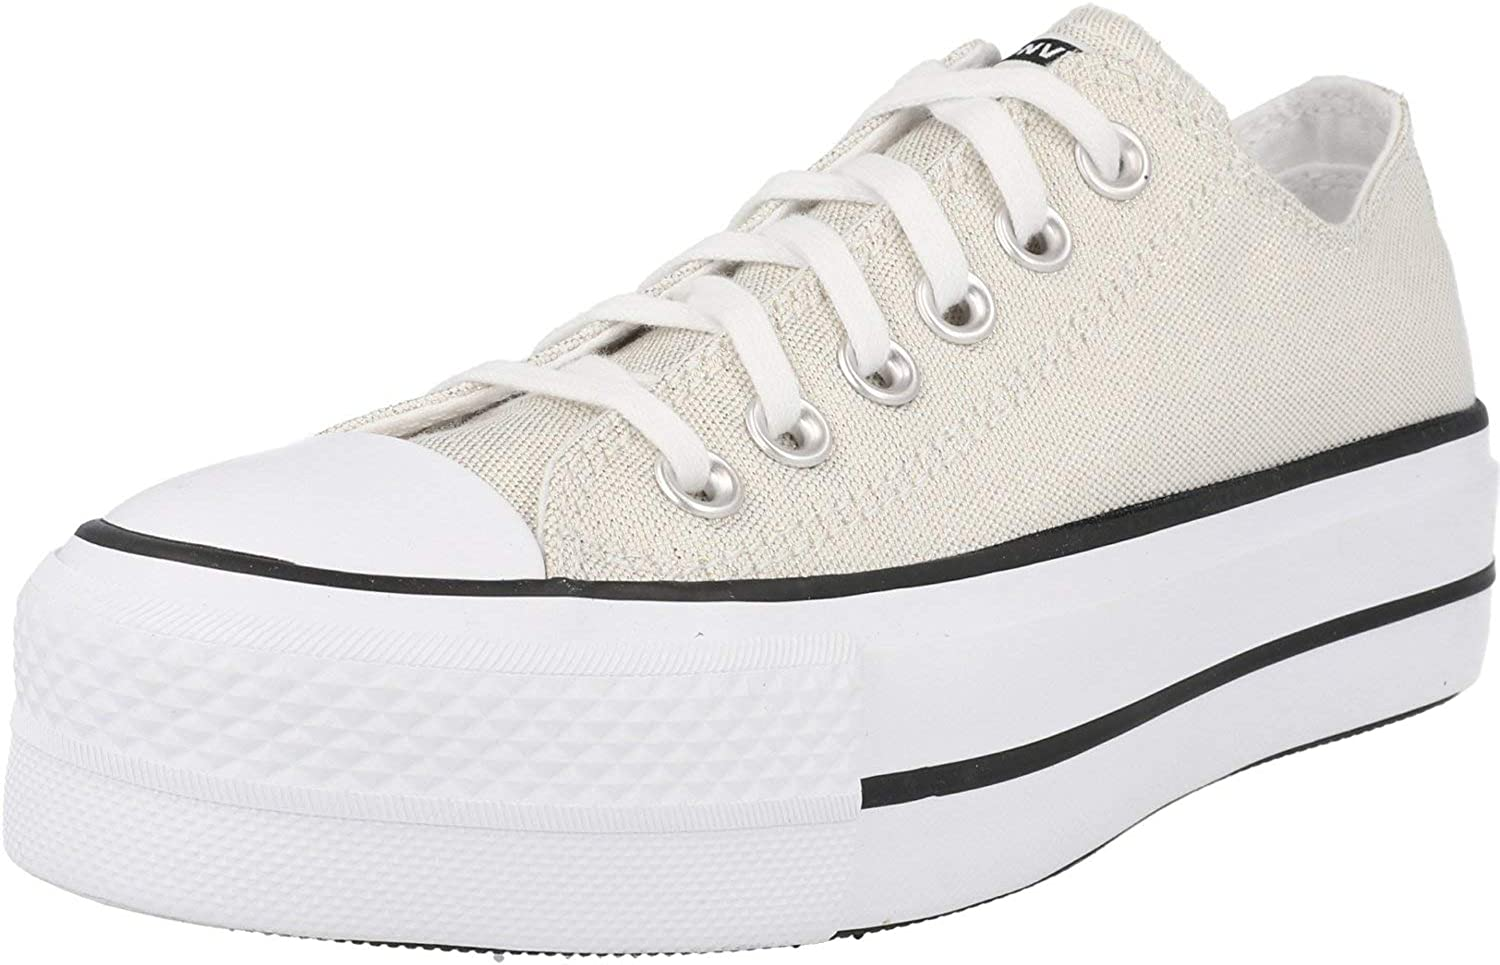 Converse Chuck Taylor All Star Lift Industrial Glam Ox Gold/Black Polyester